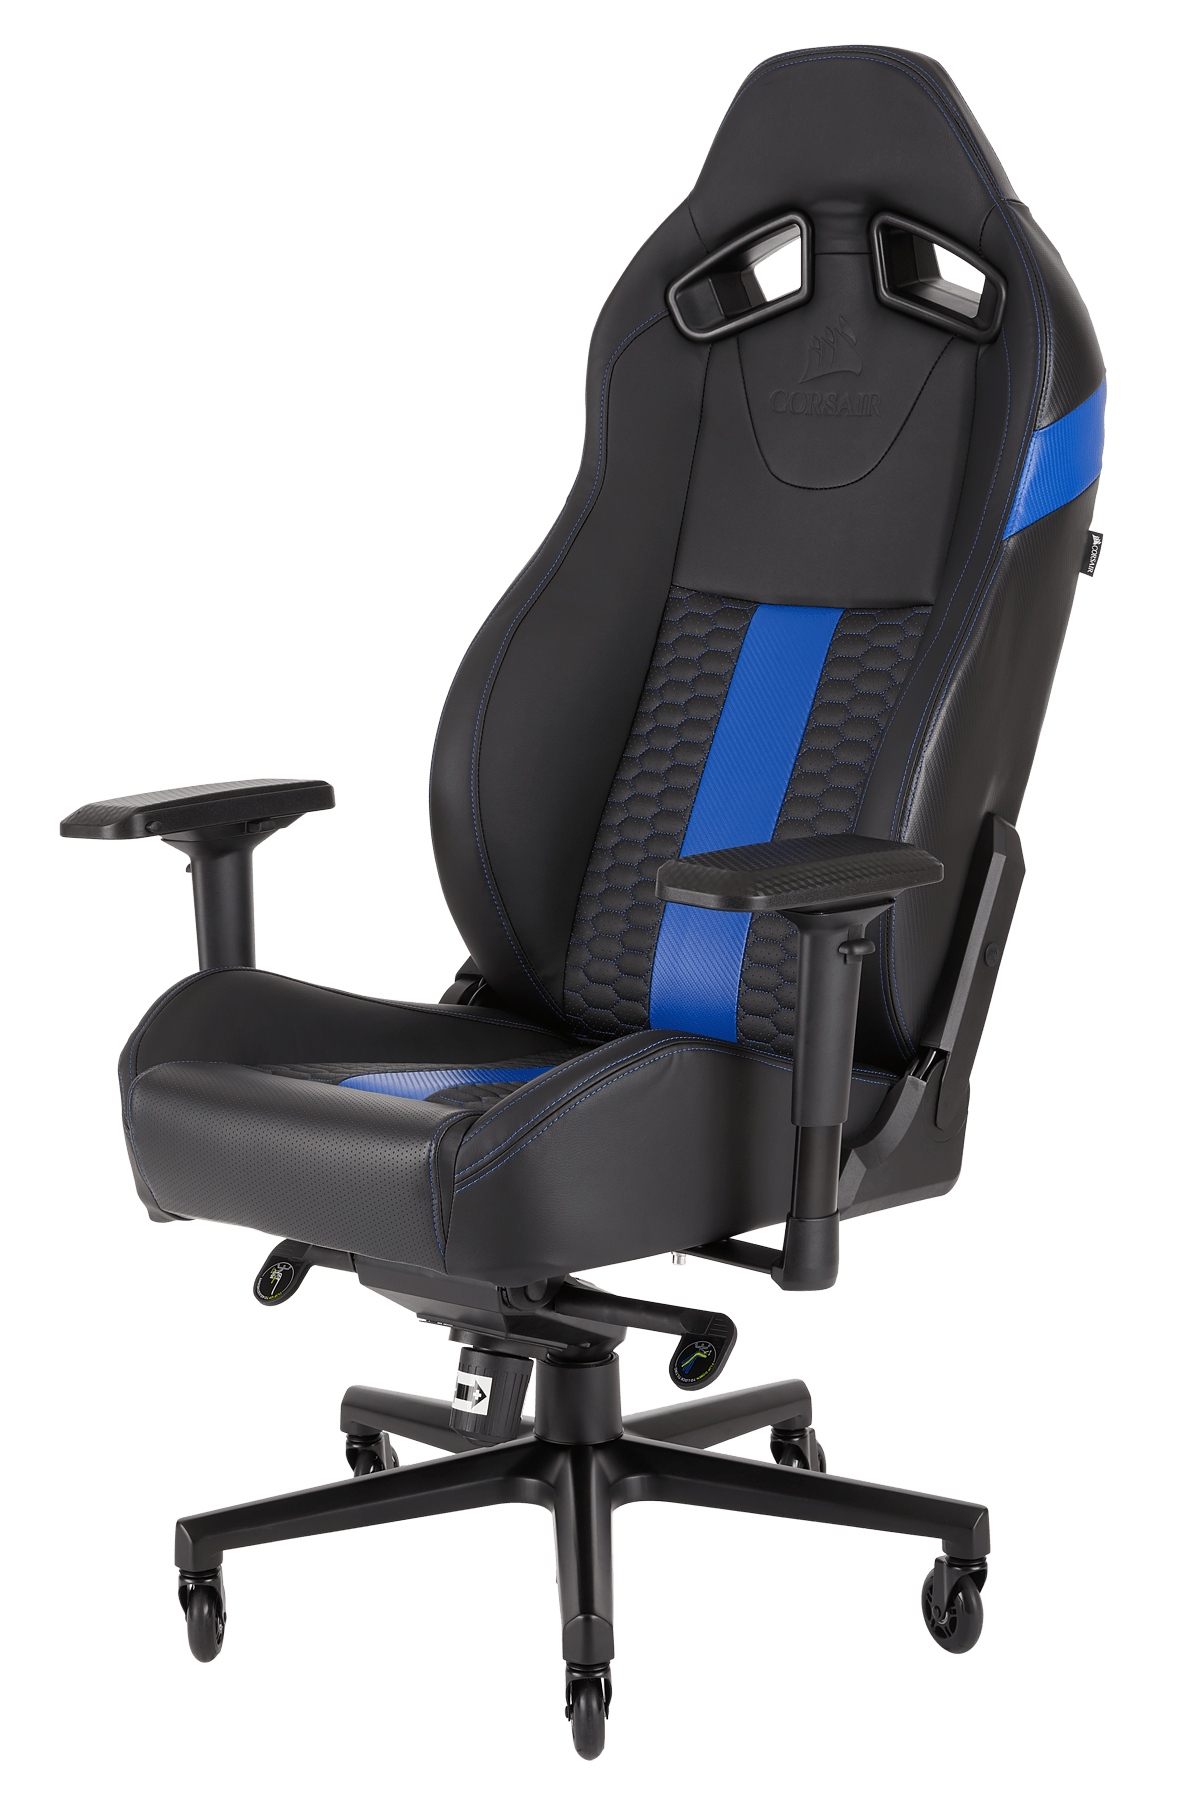 Gamer Sessel Media Markt Corsair Cf 9010009 Ww Gaming Stuhl Schwarz Blau